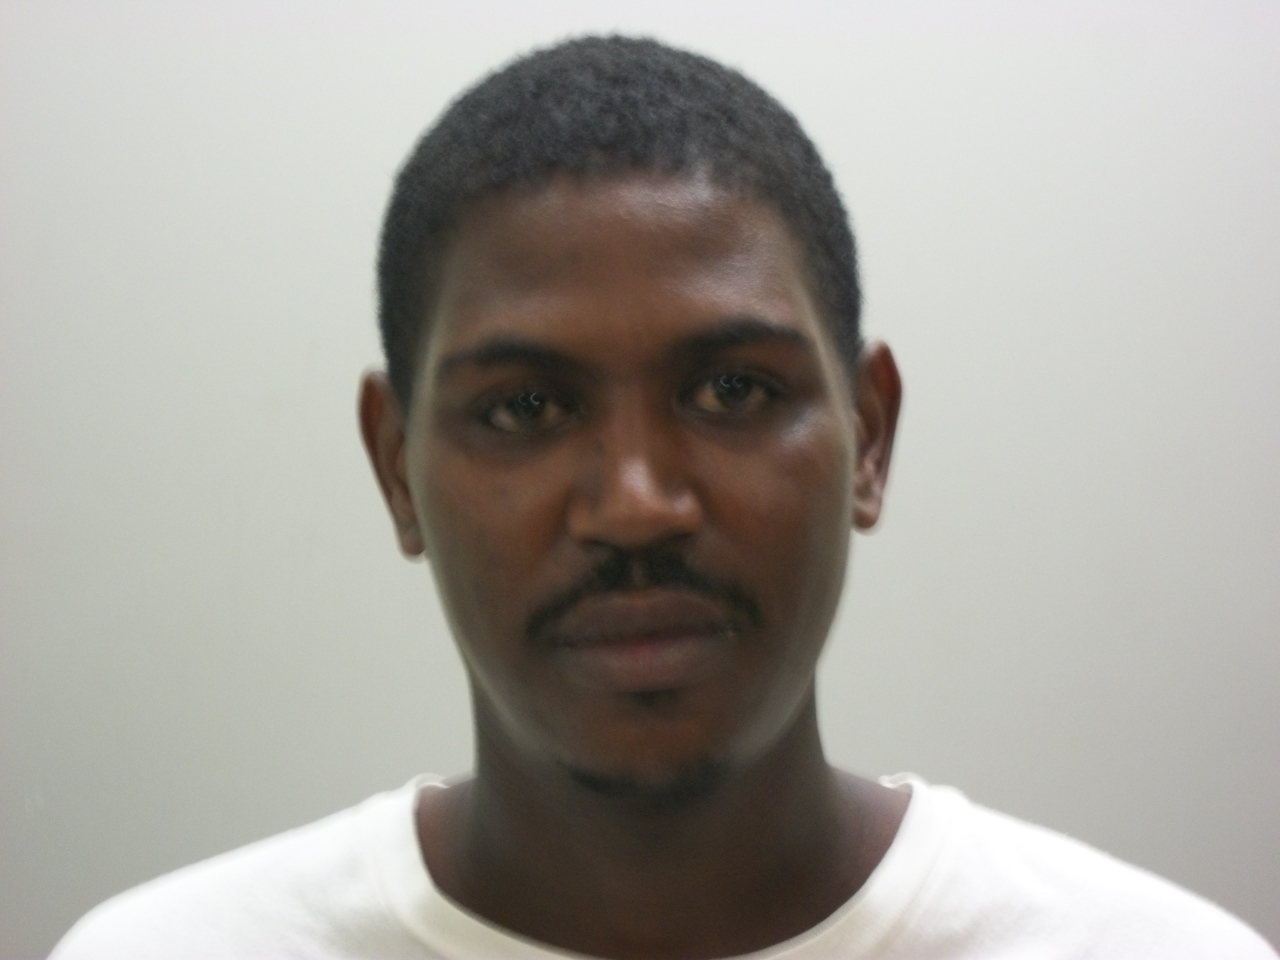 KENNETH 0 SLAUGHTER (WCSO)